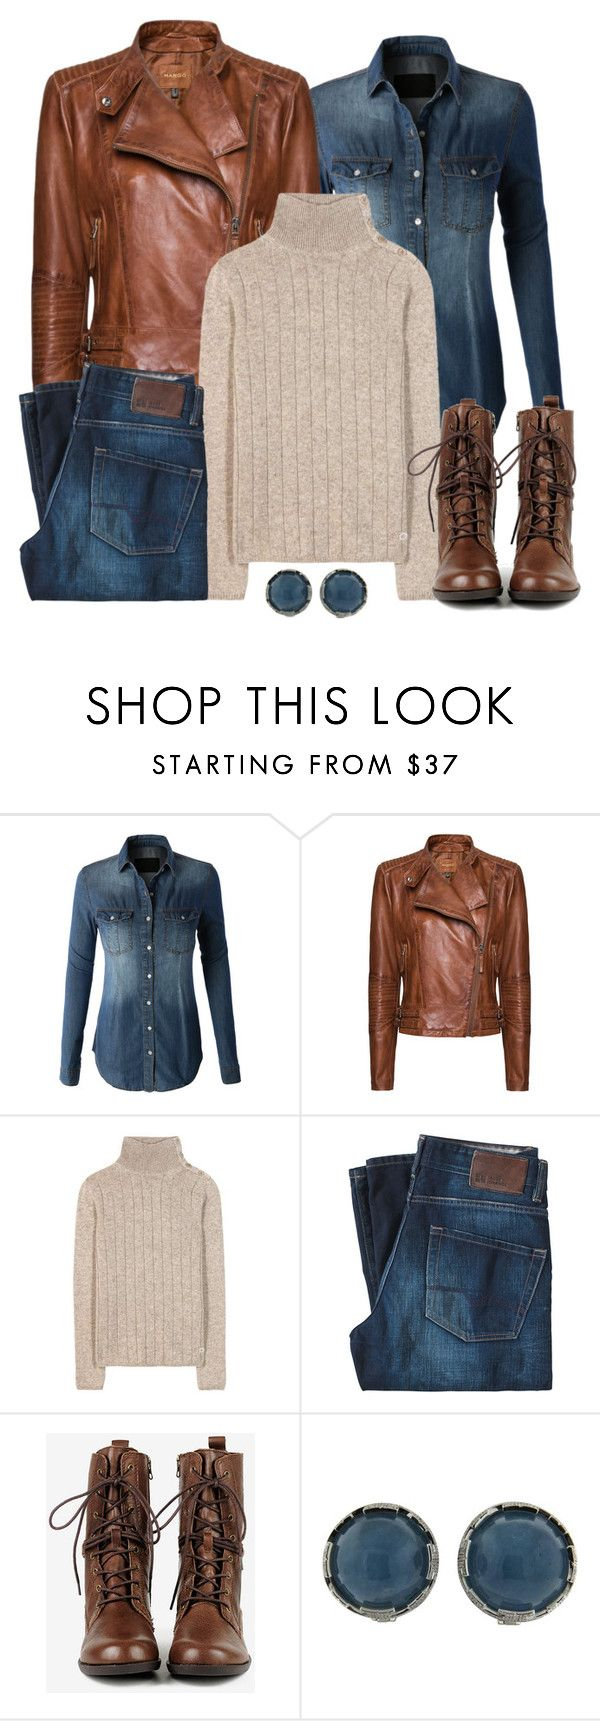 """""""Untitled #1270"""" by gallant81 ❤ liked on Polyvore featuring LE3NO, MANGO, Loro Piana, BOSS Orange and Seychelles"""